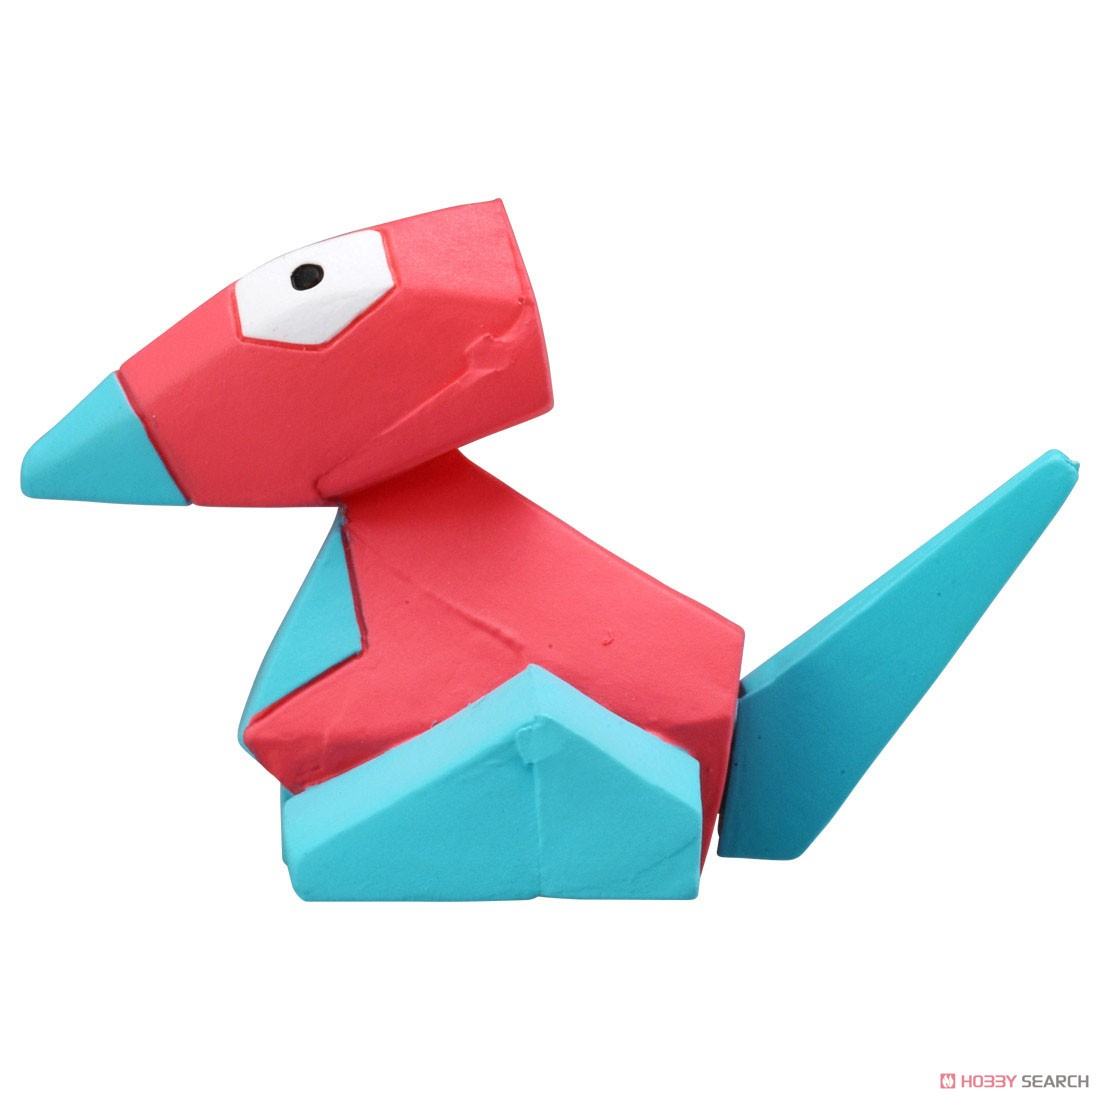 Monster CollectionEX EMC-08 Porygon (Character Toy) Item picture3